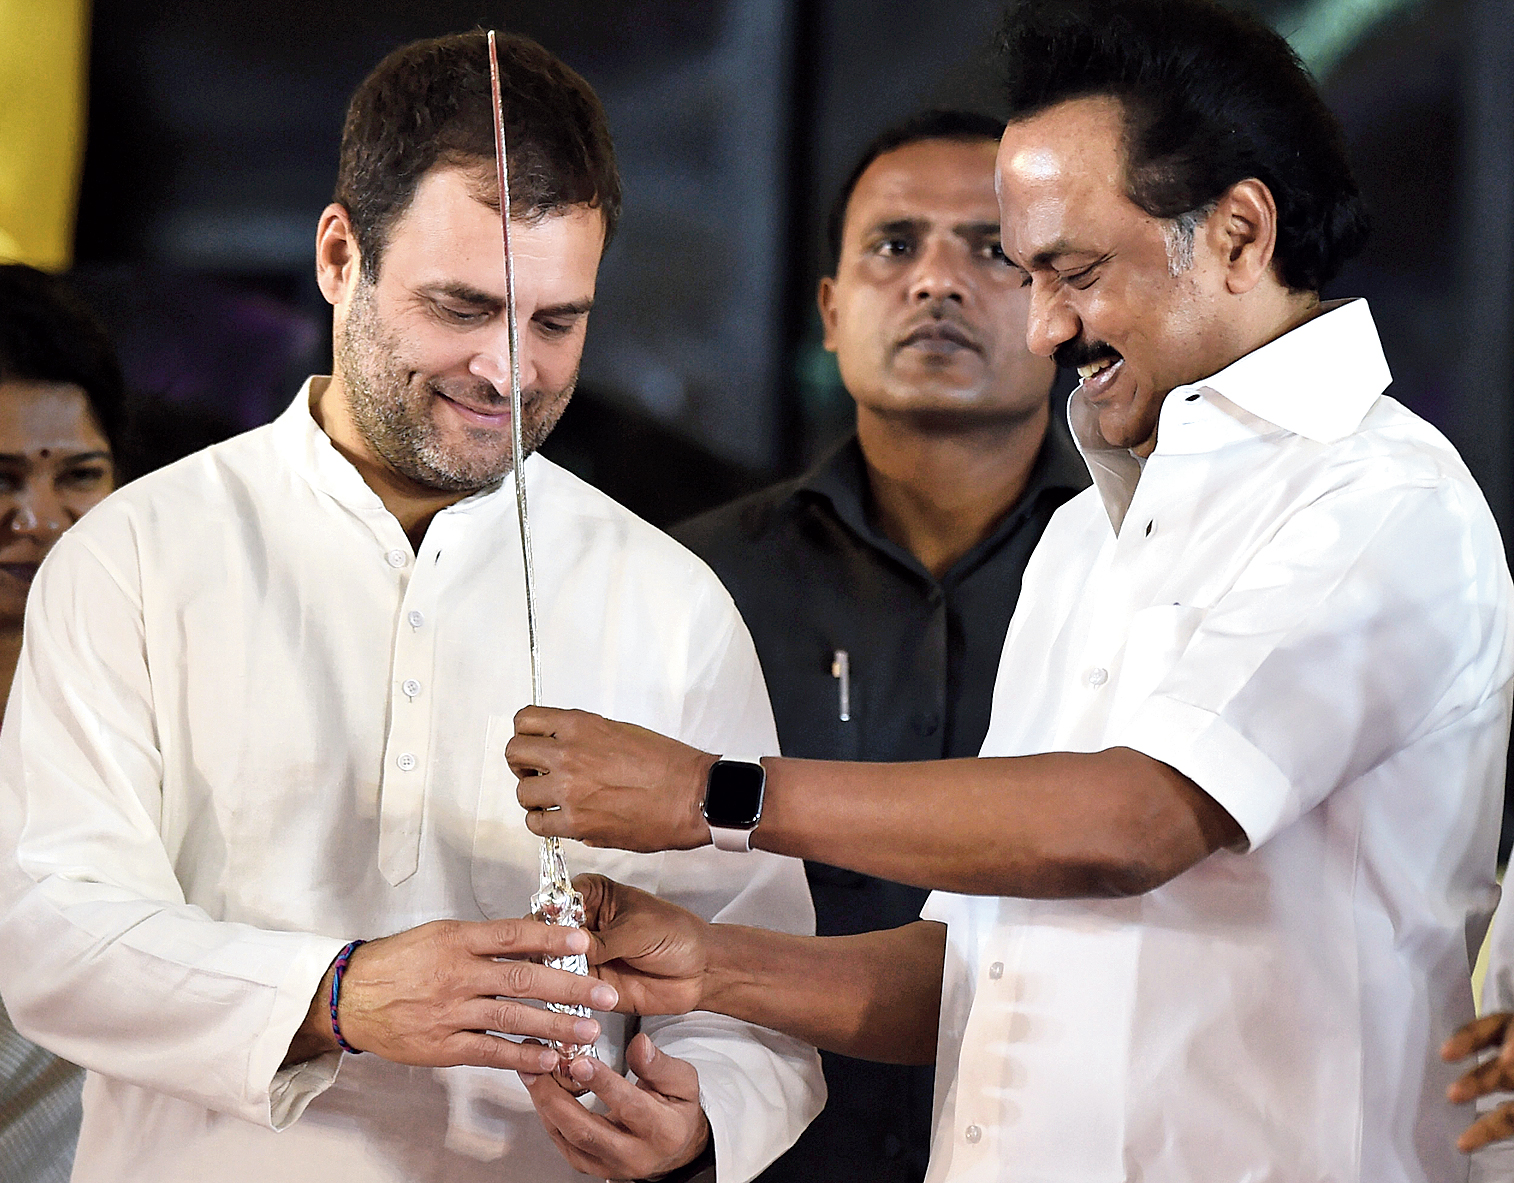 M.K. Stalin proposes Rahul Gandhi for PM to defeat 'Fascist Nazist' govt -  Telegraph India